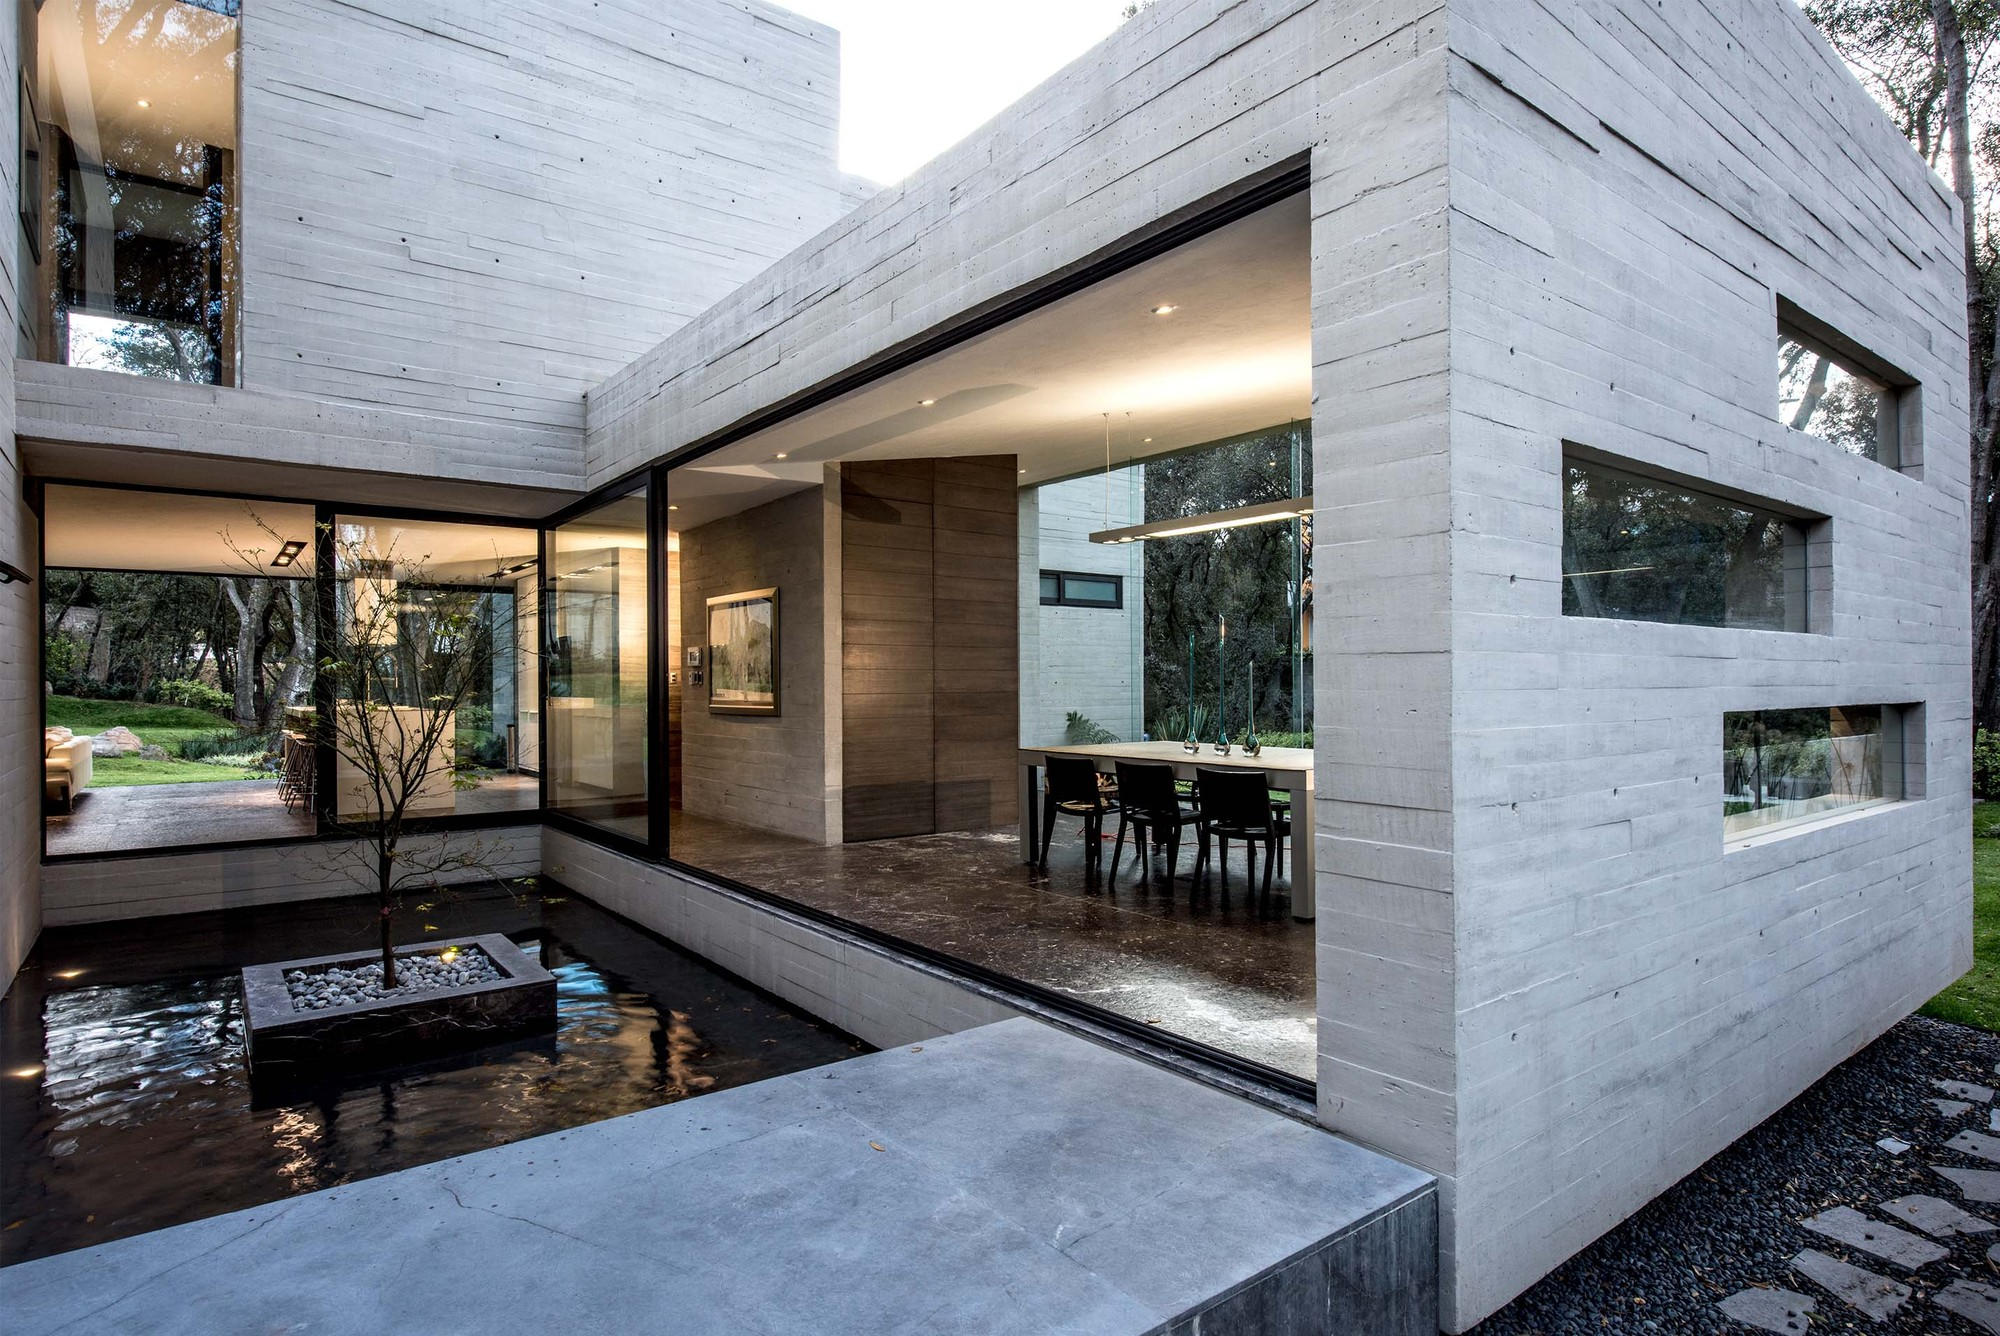 Casa concreto grupo mm archdaily for Designer casa